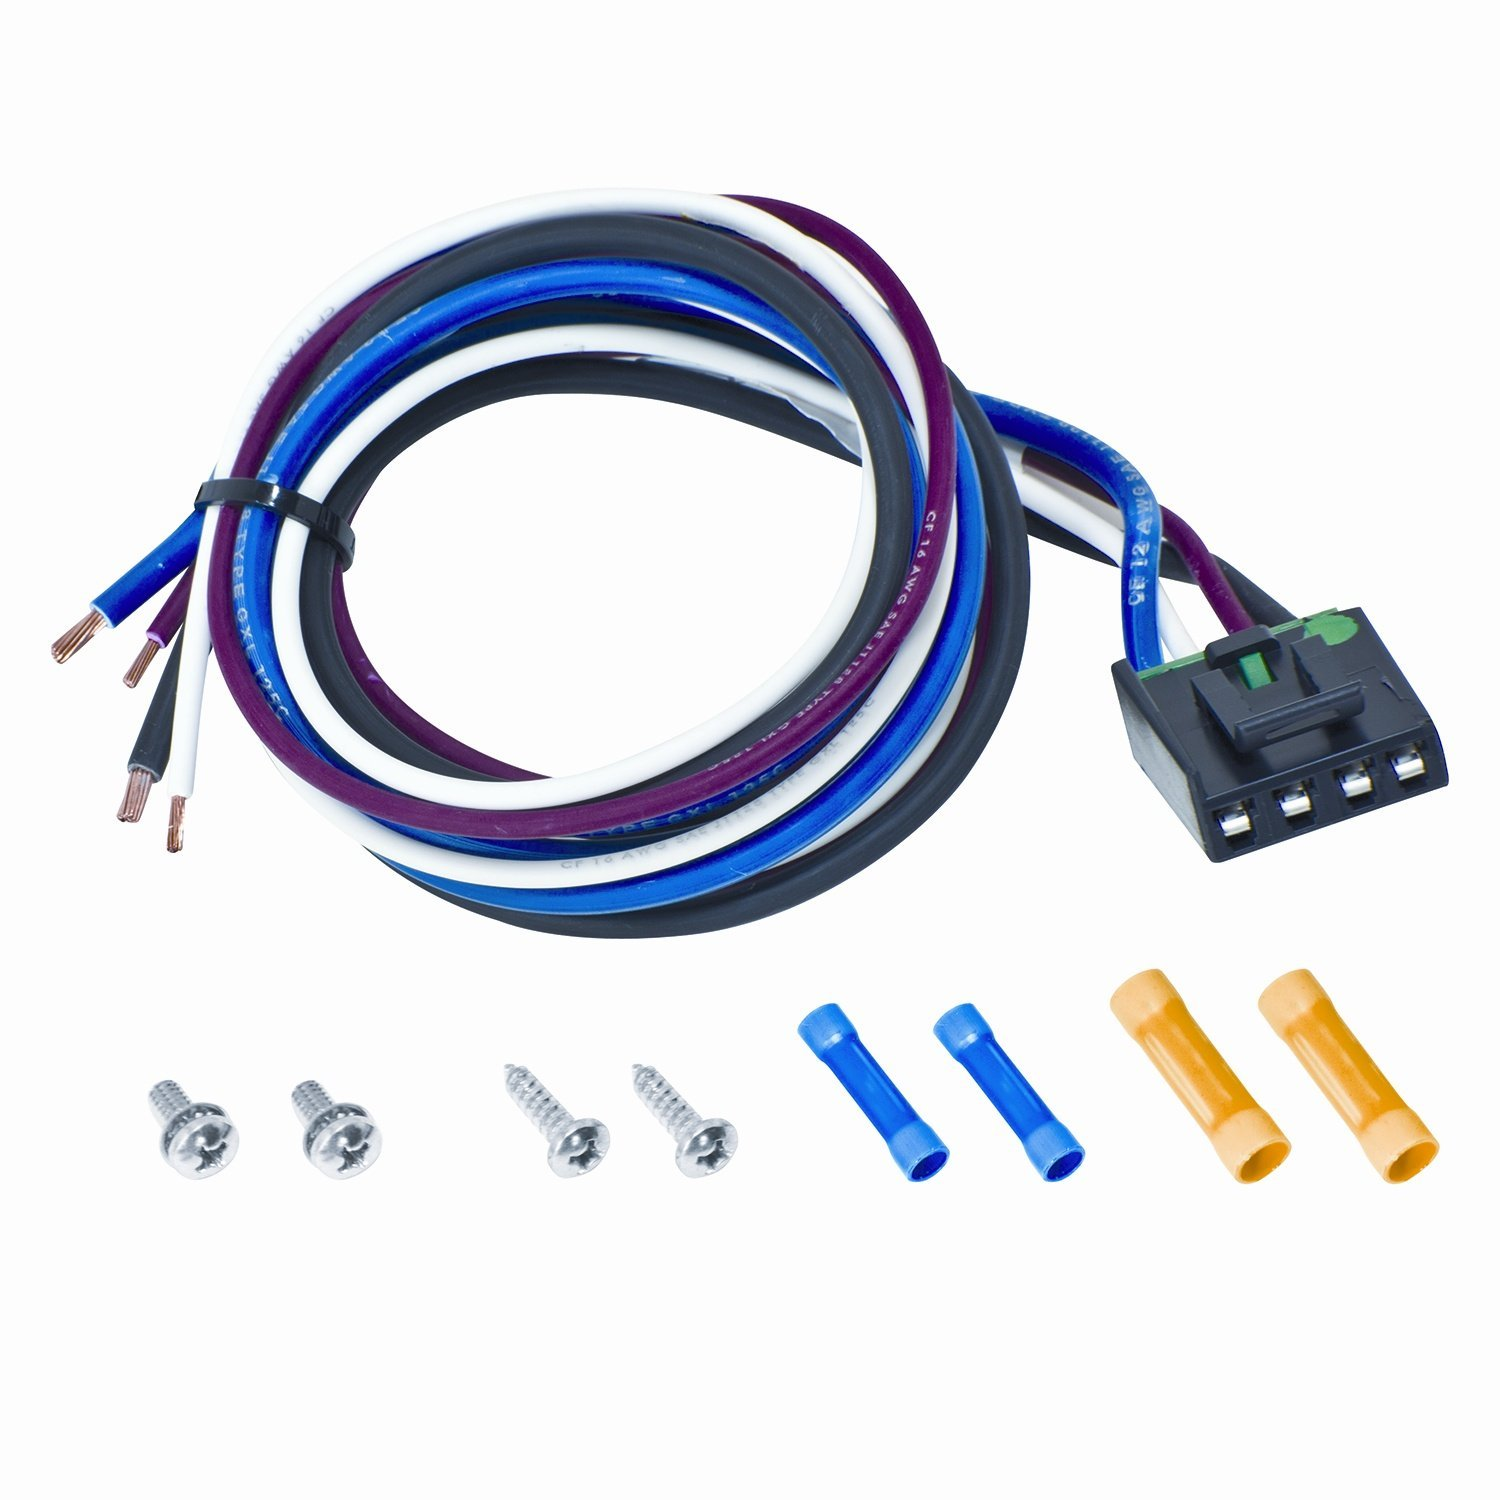 7894 use this pigtail wiring harness to quickly and easily transfer tekonsha wiring harness problems prodigy wiring harness kit